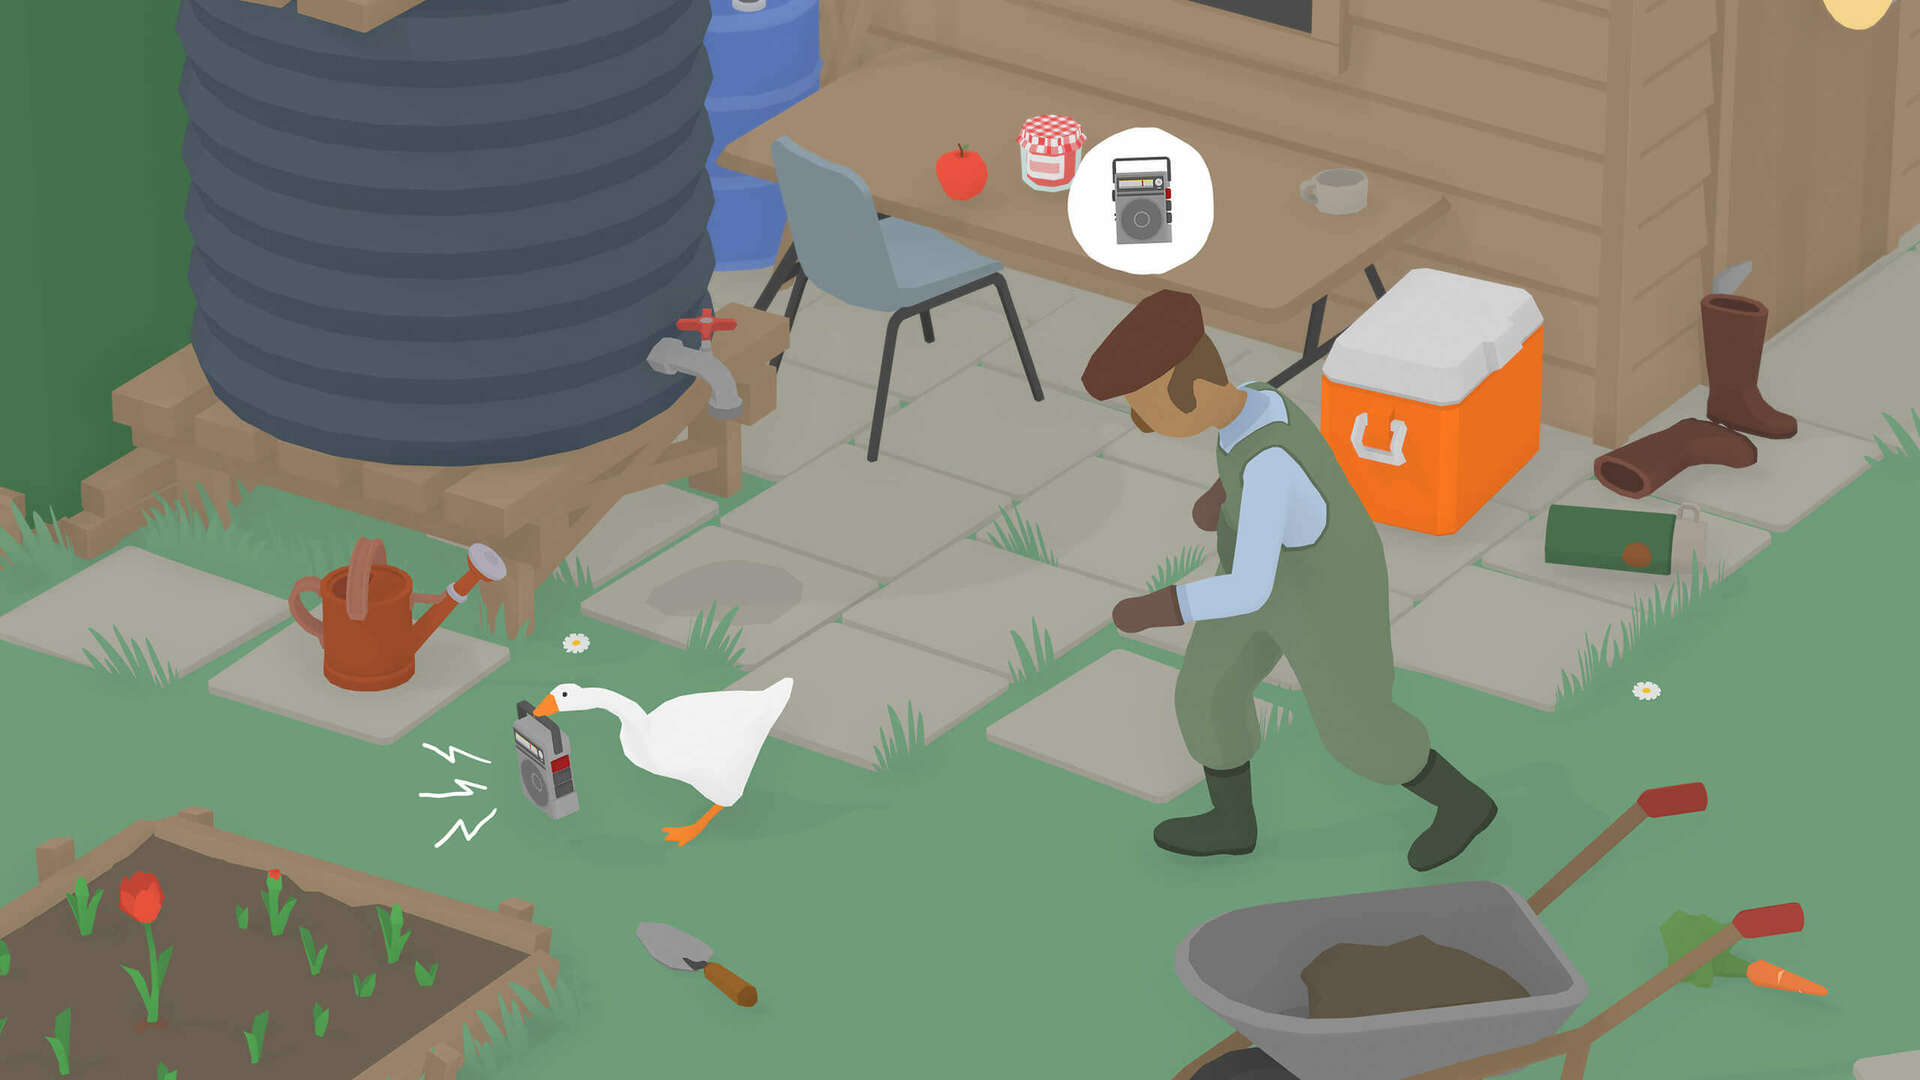 Untitled Goose Game Uses About 400 Different Tracks to Adapt to Your Goose Antics